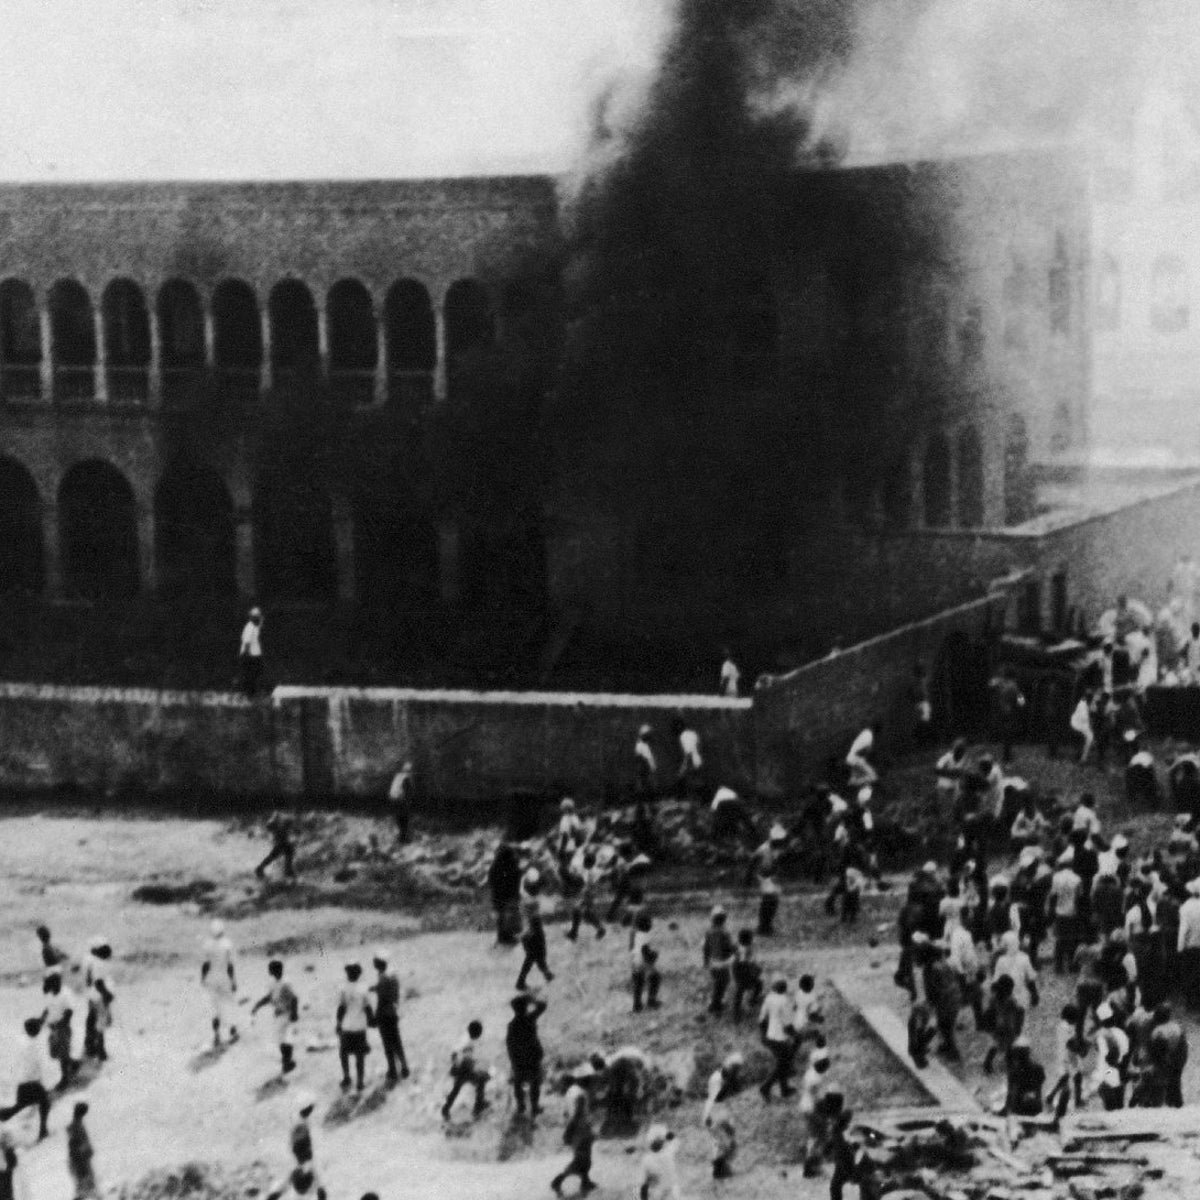 Arabs set alight a Jewish school for boys in Aden, Yemen during a demonstration against the UN partition of Palestine, on December 19, 1947.